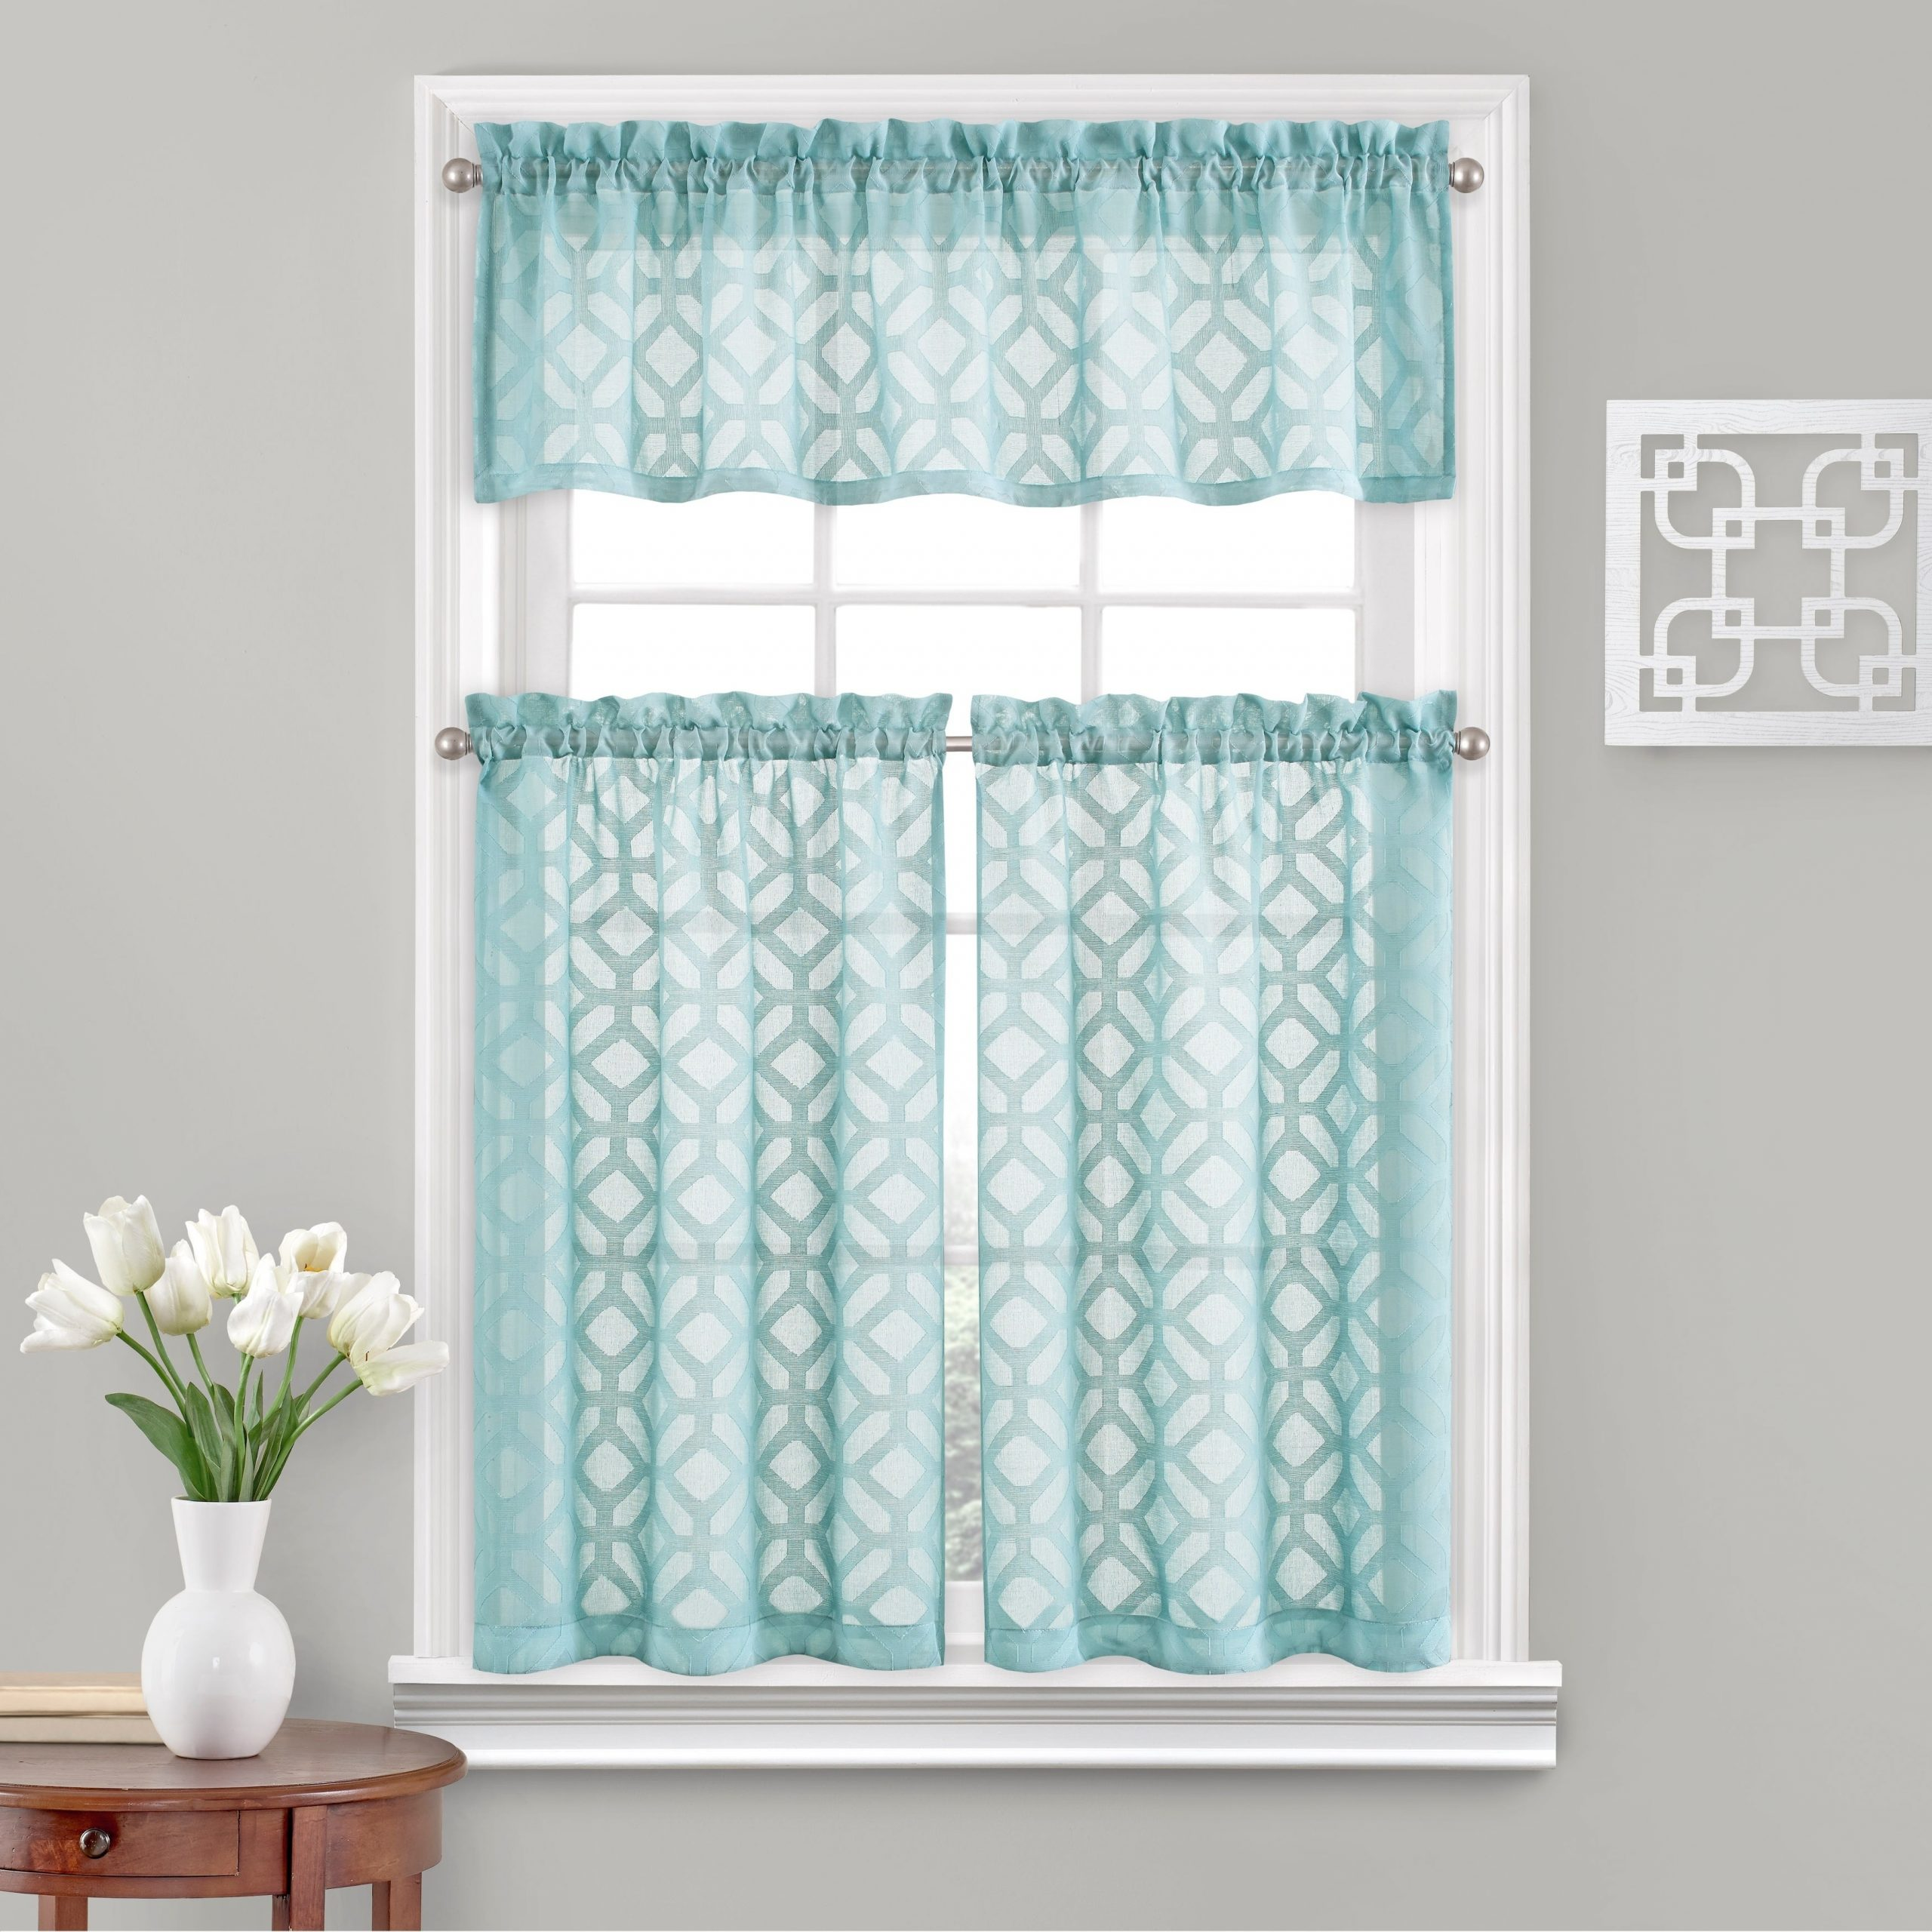 Vue Window Solutions Trellis Clip Tier Pair In White Tone On Tone Raised Microcheck Semisheer Window Curtain Pieces (View 7 of 20)